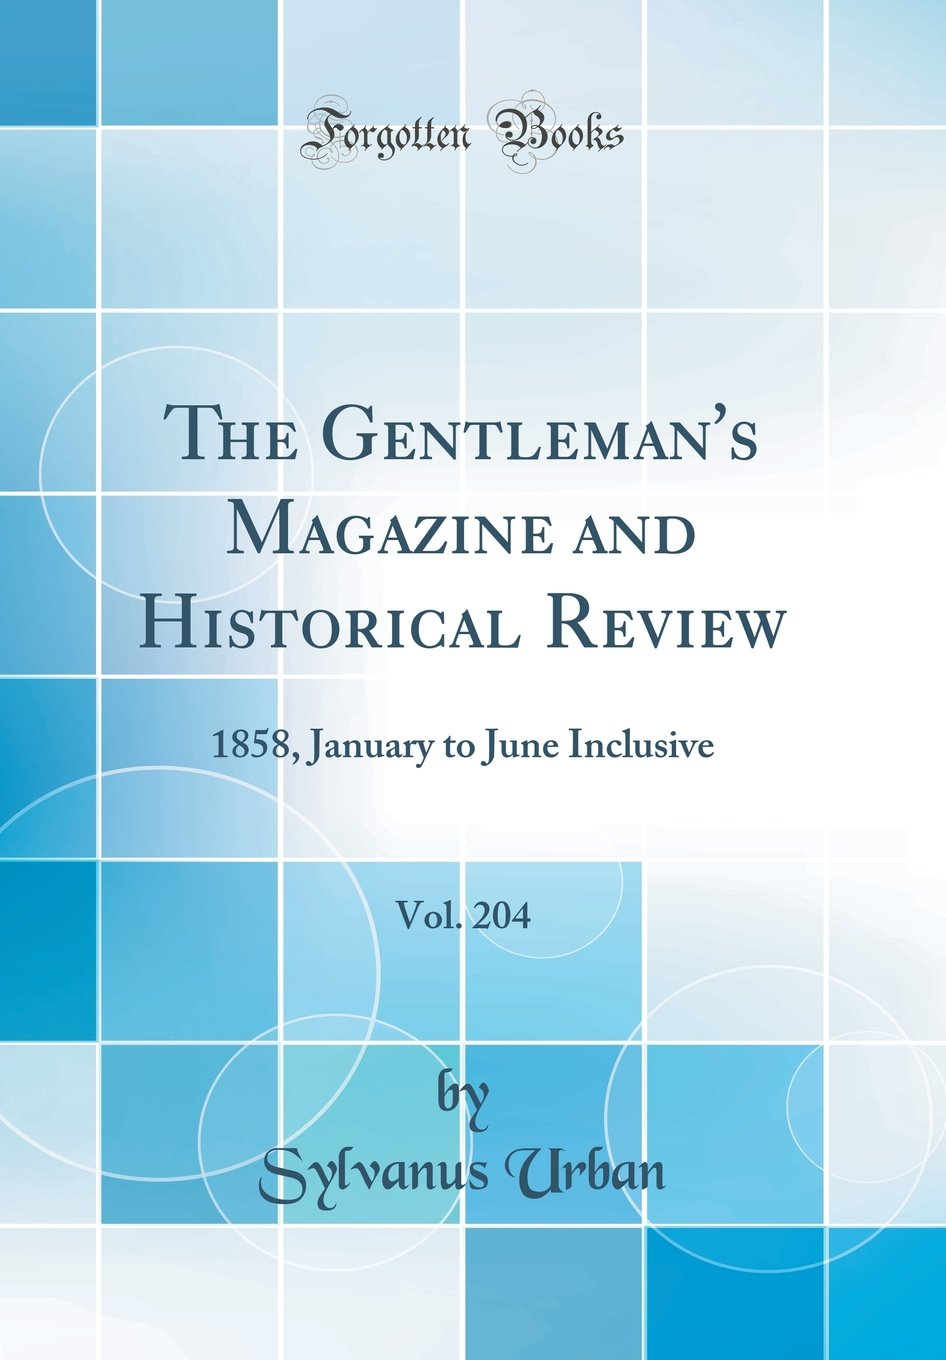 The Gentleman's Magazine and Historical Review, Vol. 204: 1858, January to June Inclusive (Classic Reprint) pdf